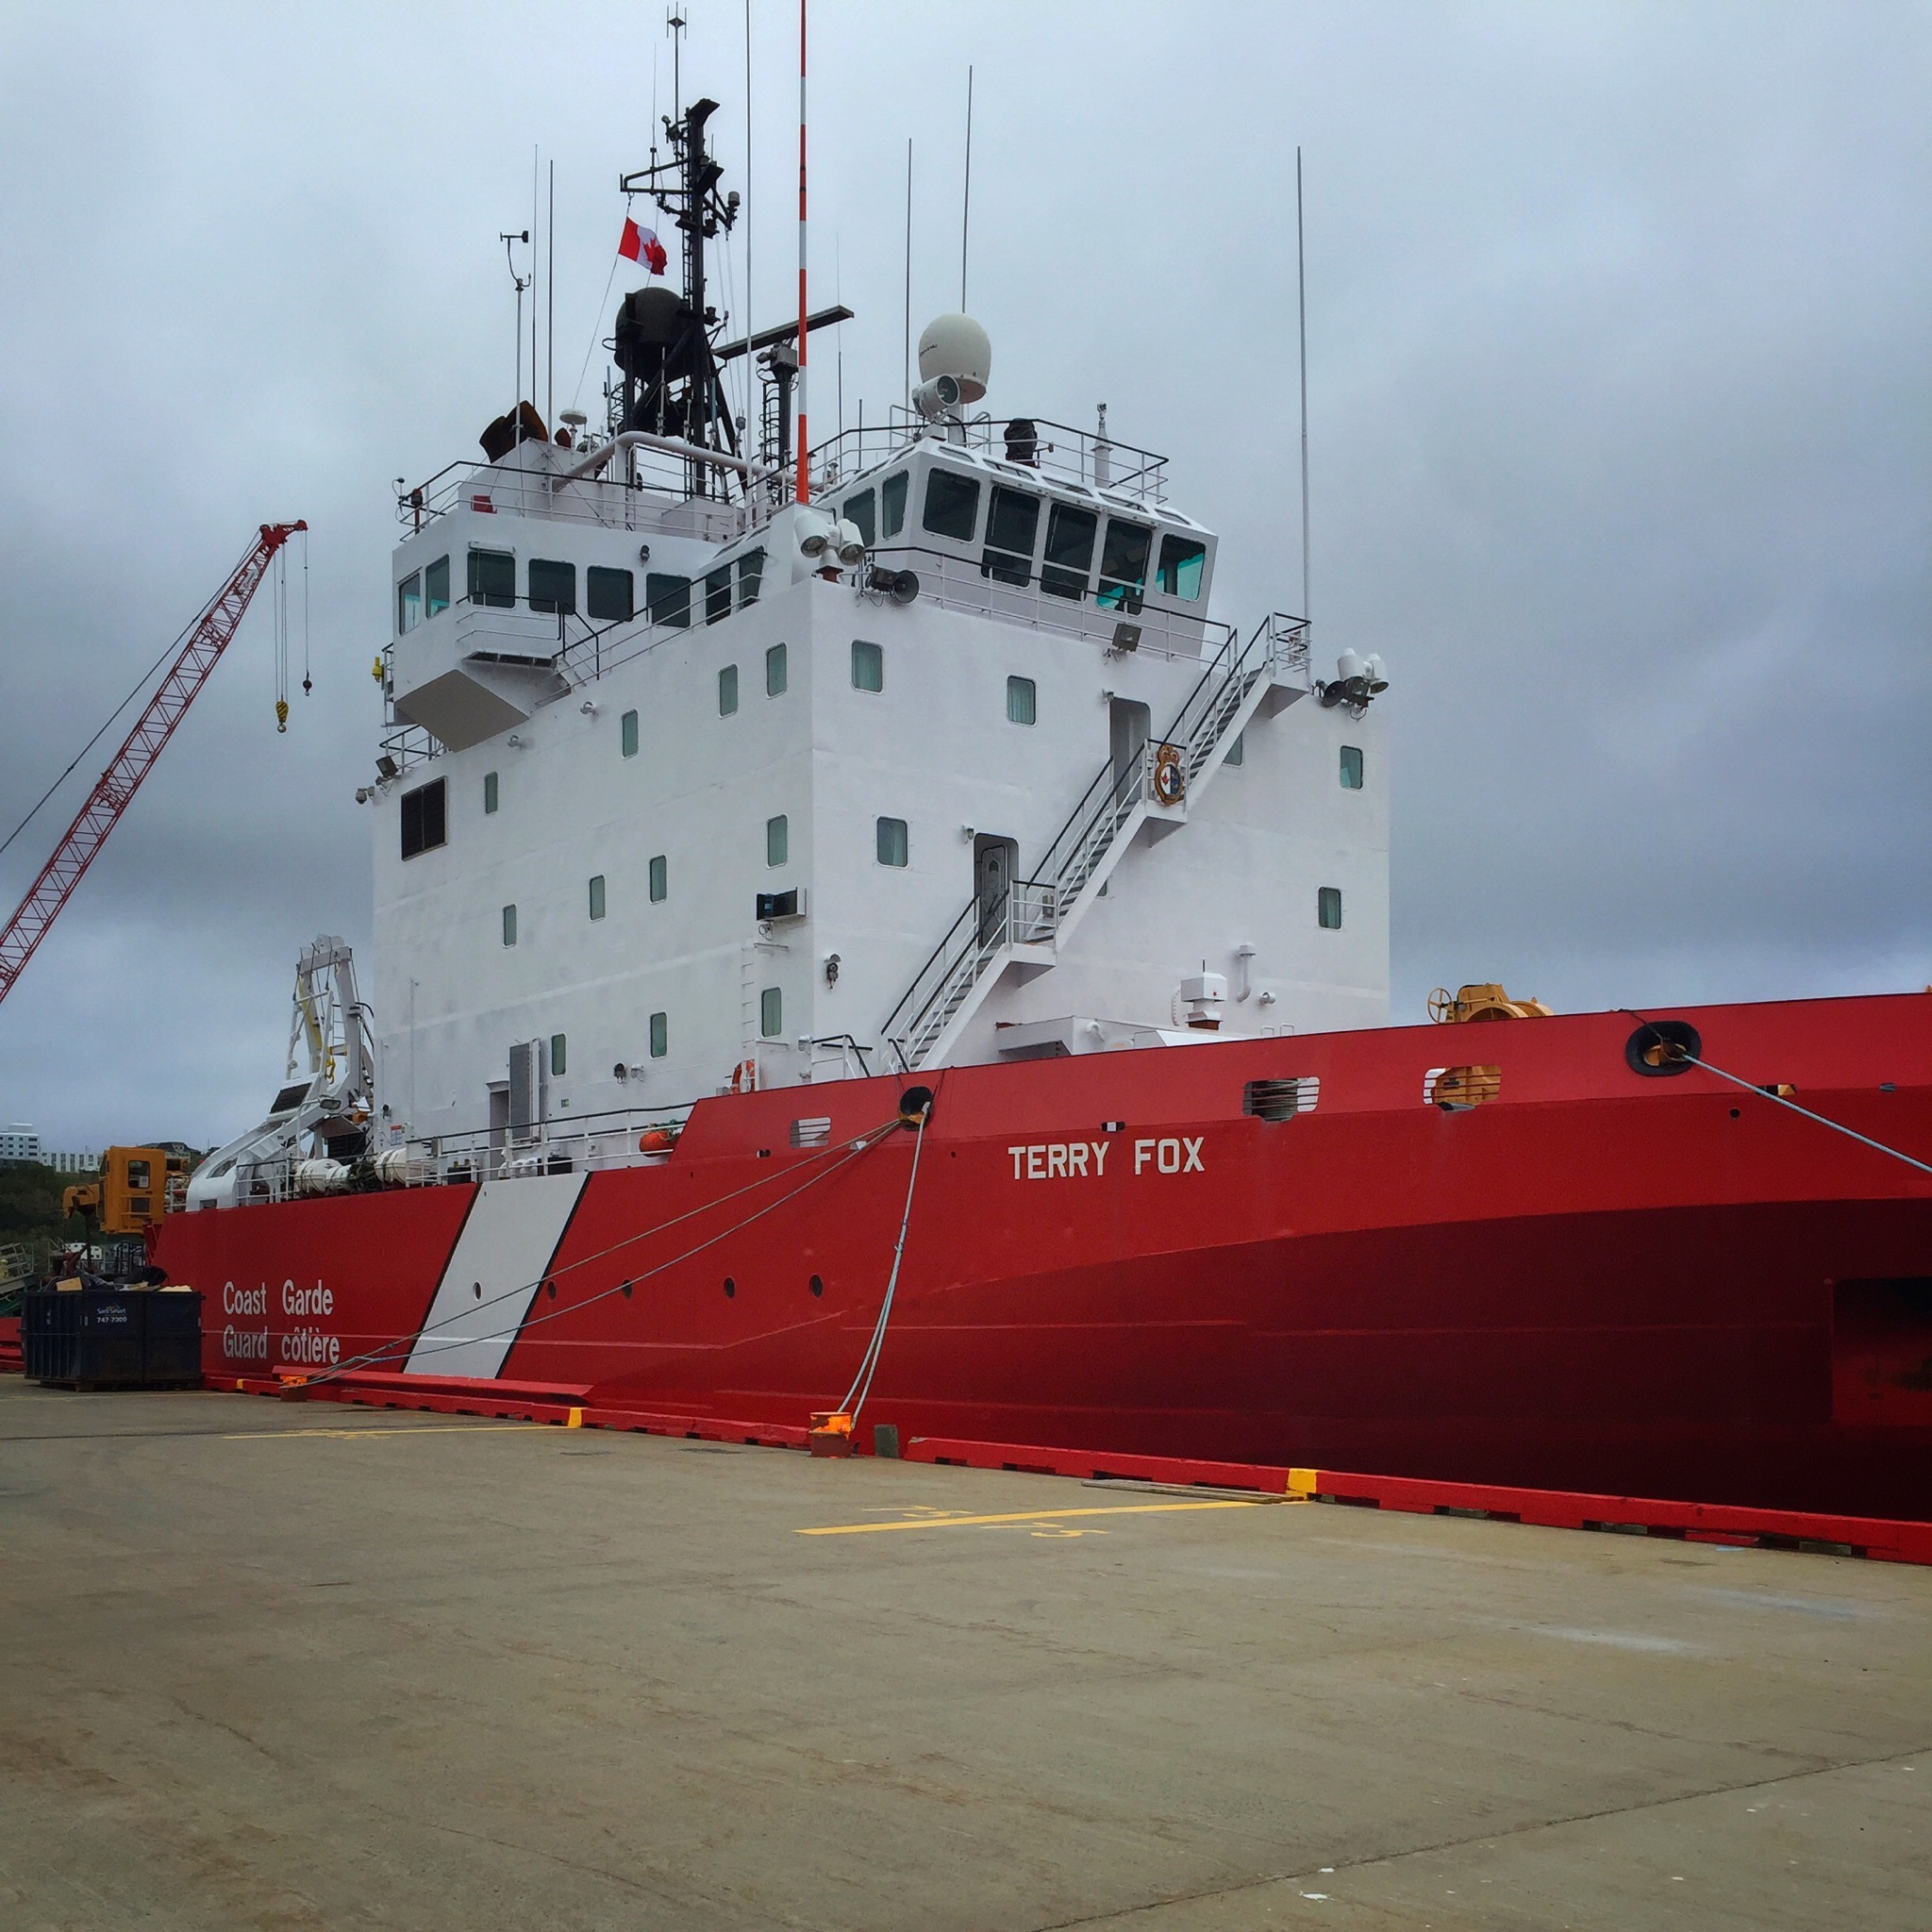 Canadian Coast Guard Ship Docked in Harbour